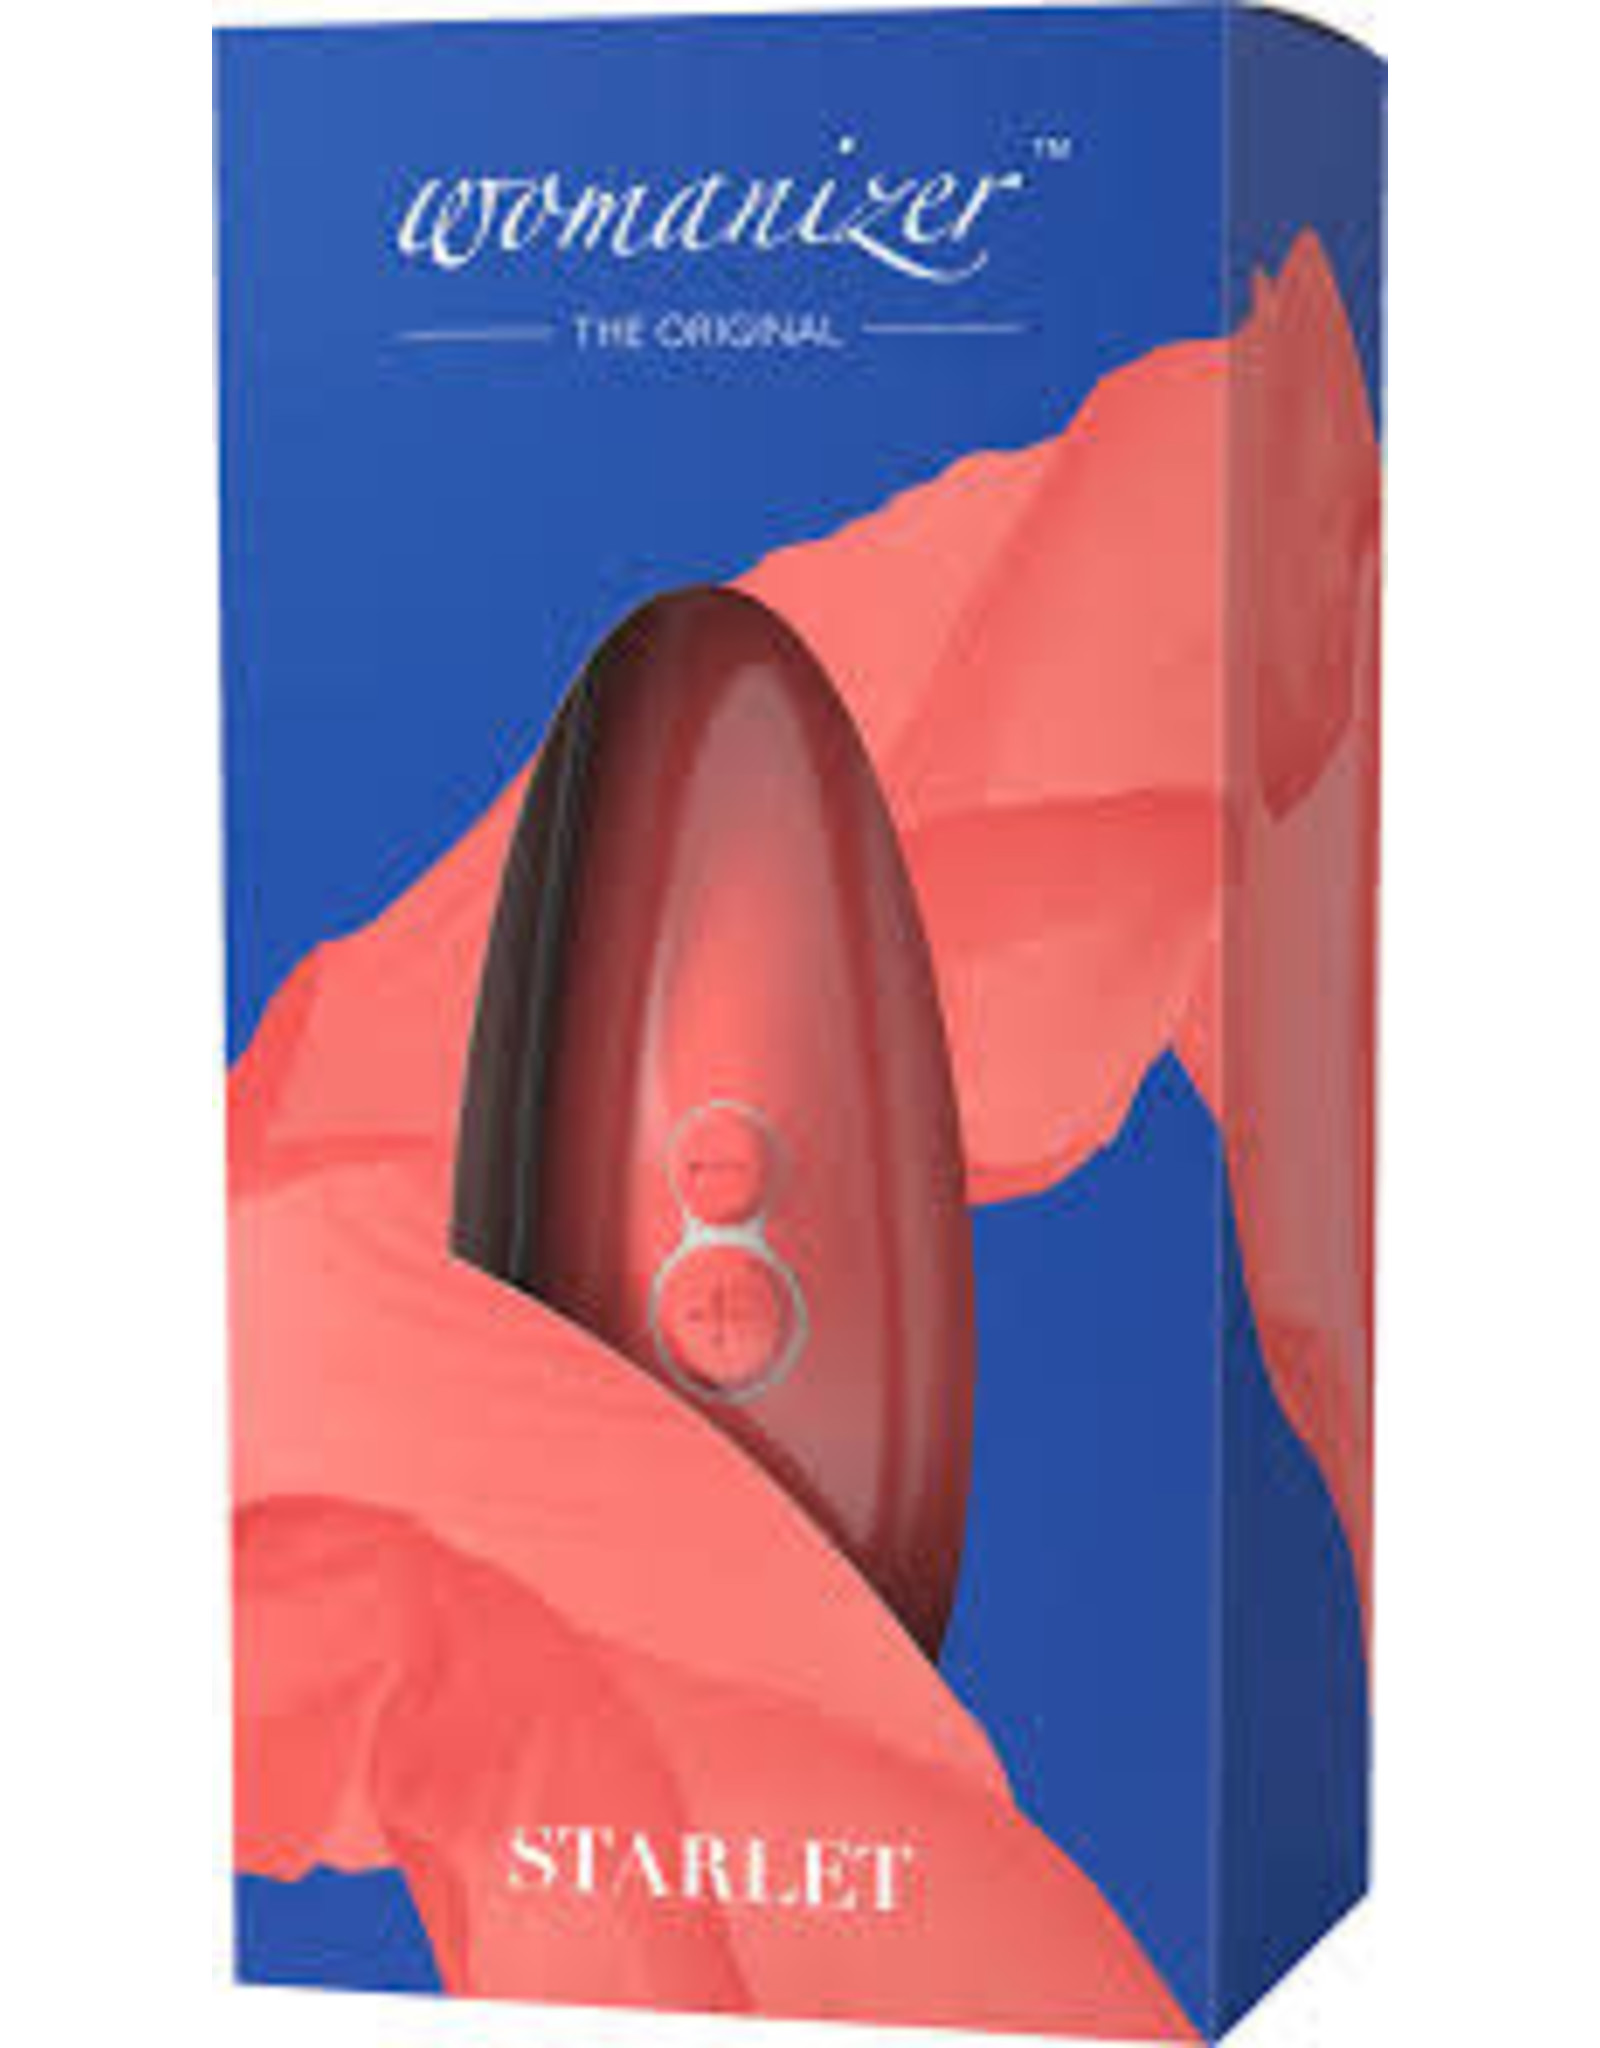 WOMANIZER WOMANIZER - STARLET 2 - CORAL